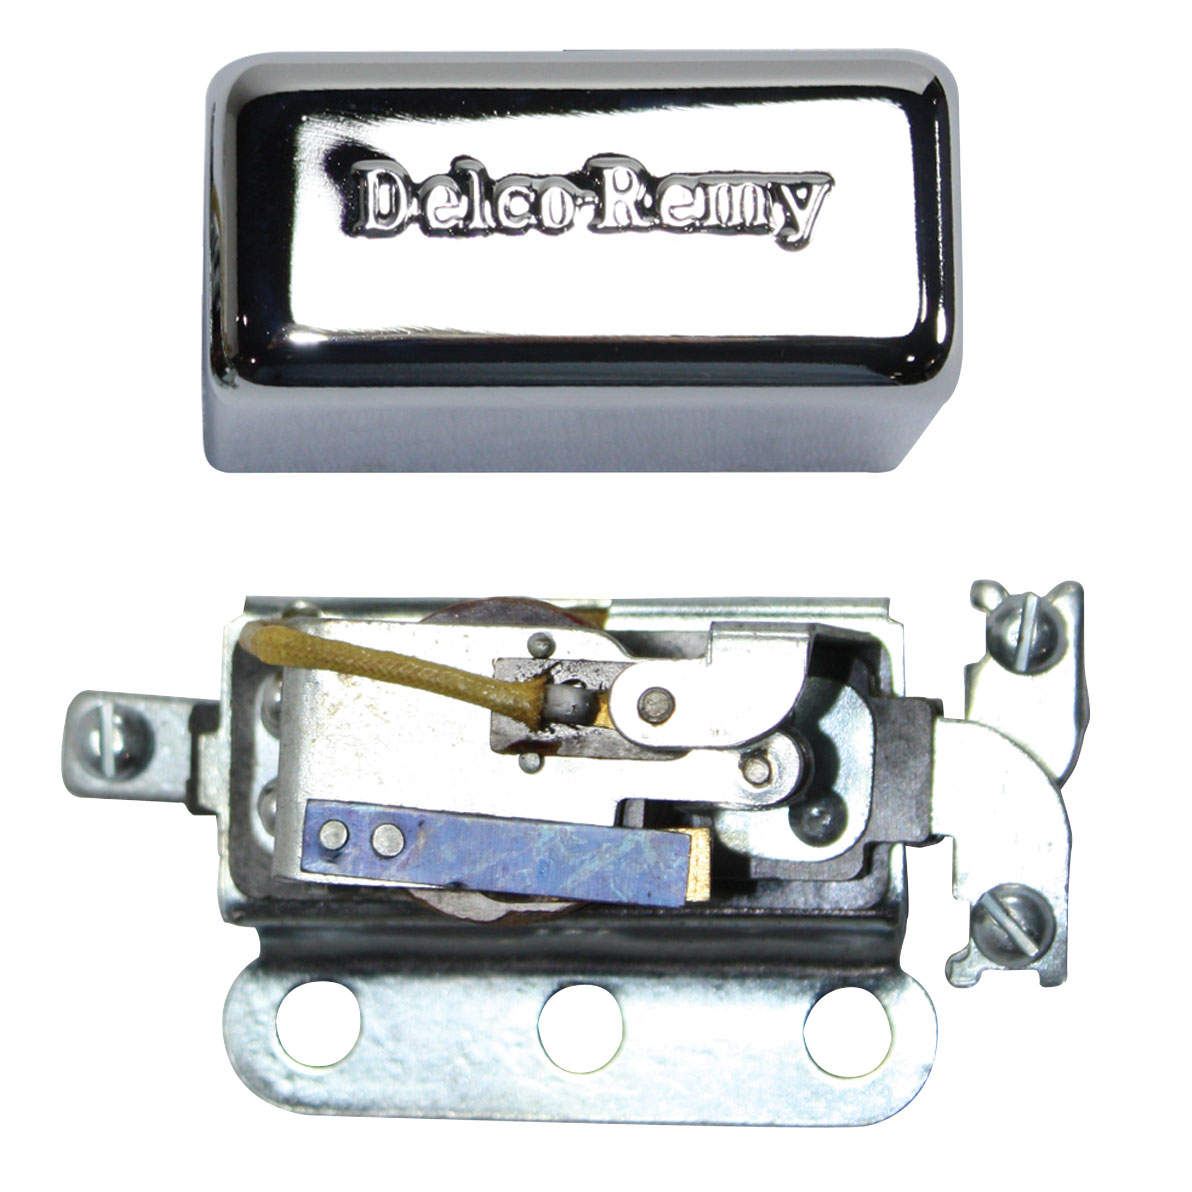 Replica Delco Remy 3 Brush Relay